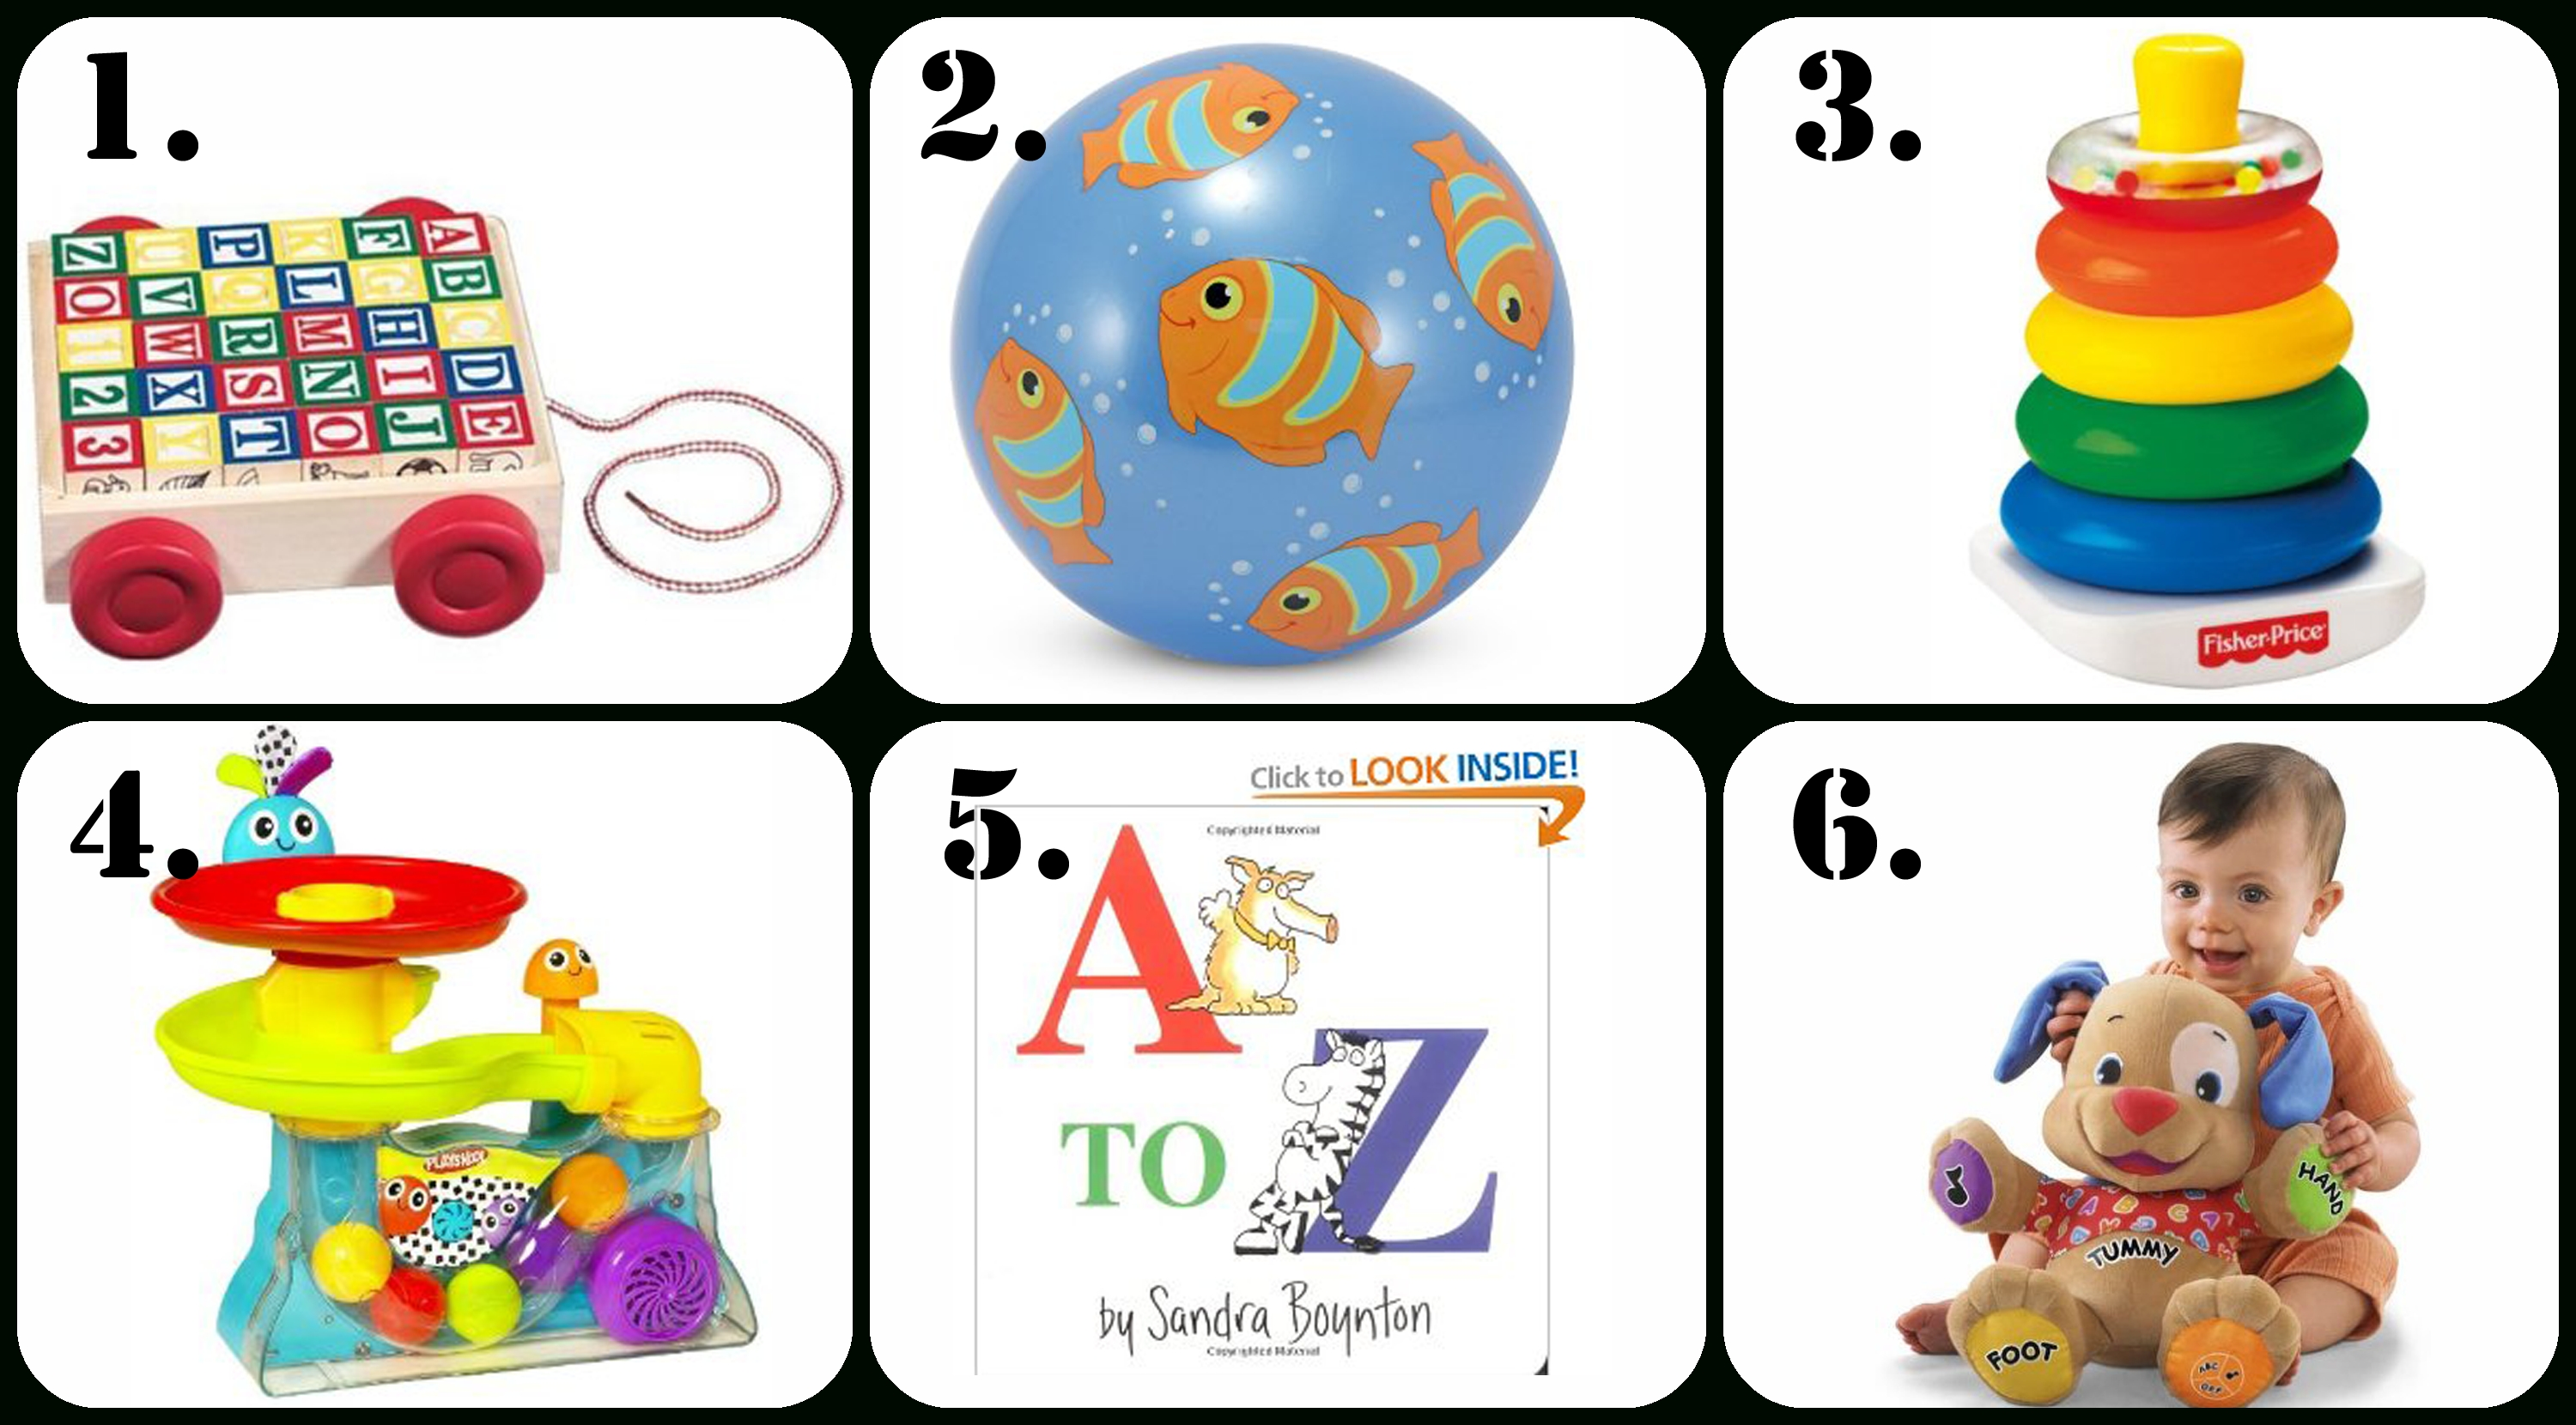 10 Pretty Gift Ideas For One Year Old Girl the ultimate gift list for a 1 year old girl e280a2 the pinning mama 8 2020